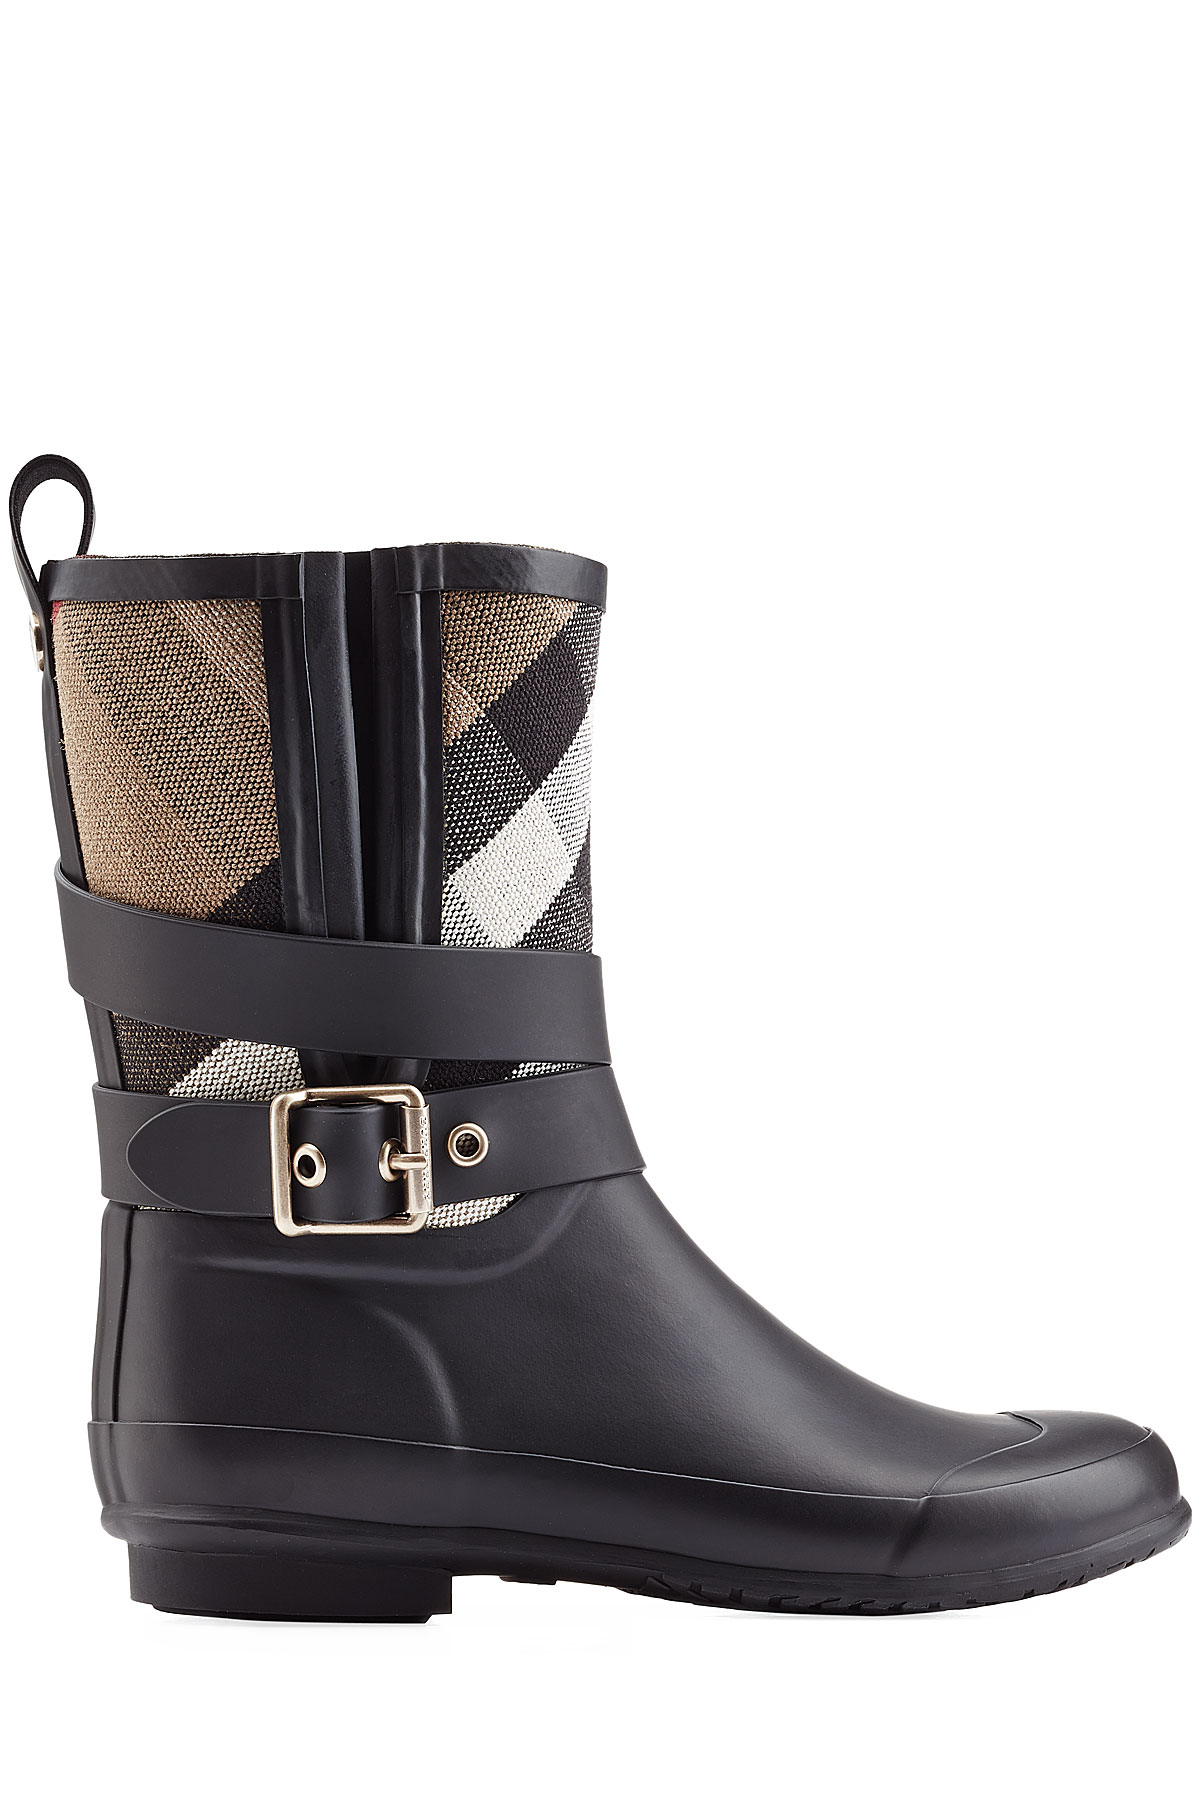 burberry holloway rain boots review